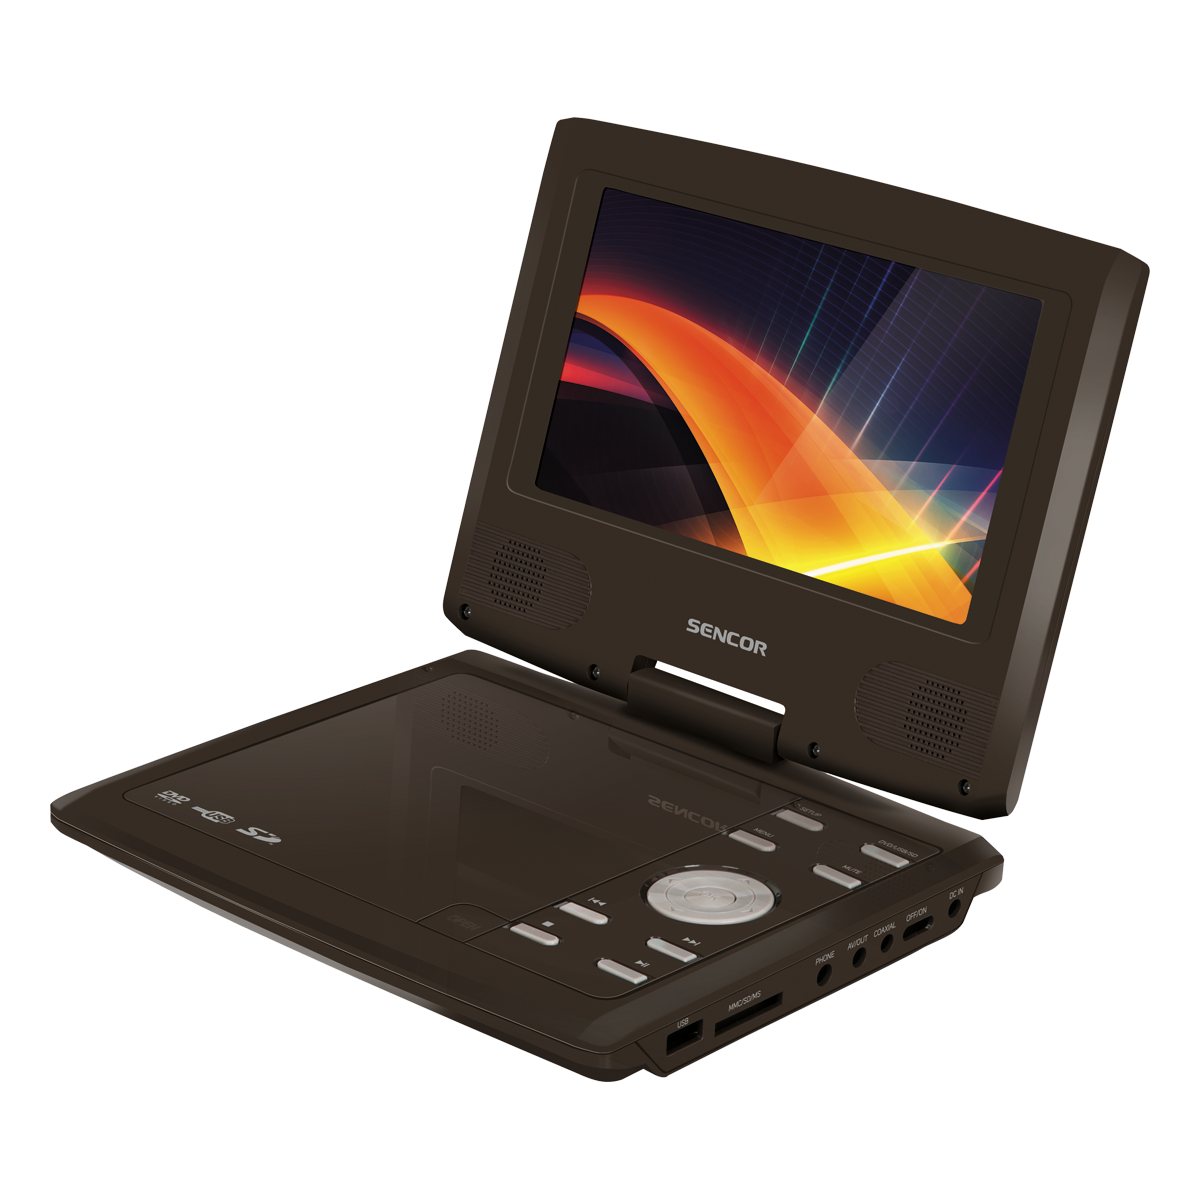 SPV 2720 BROWN Portable DVD player